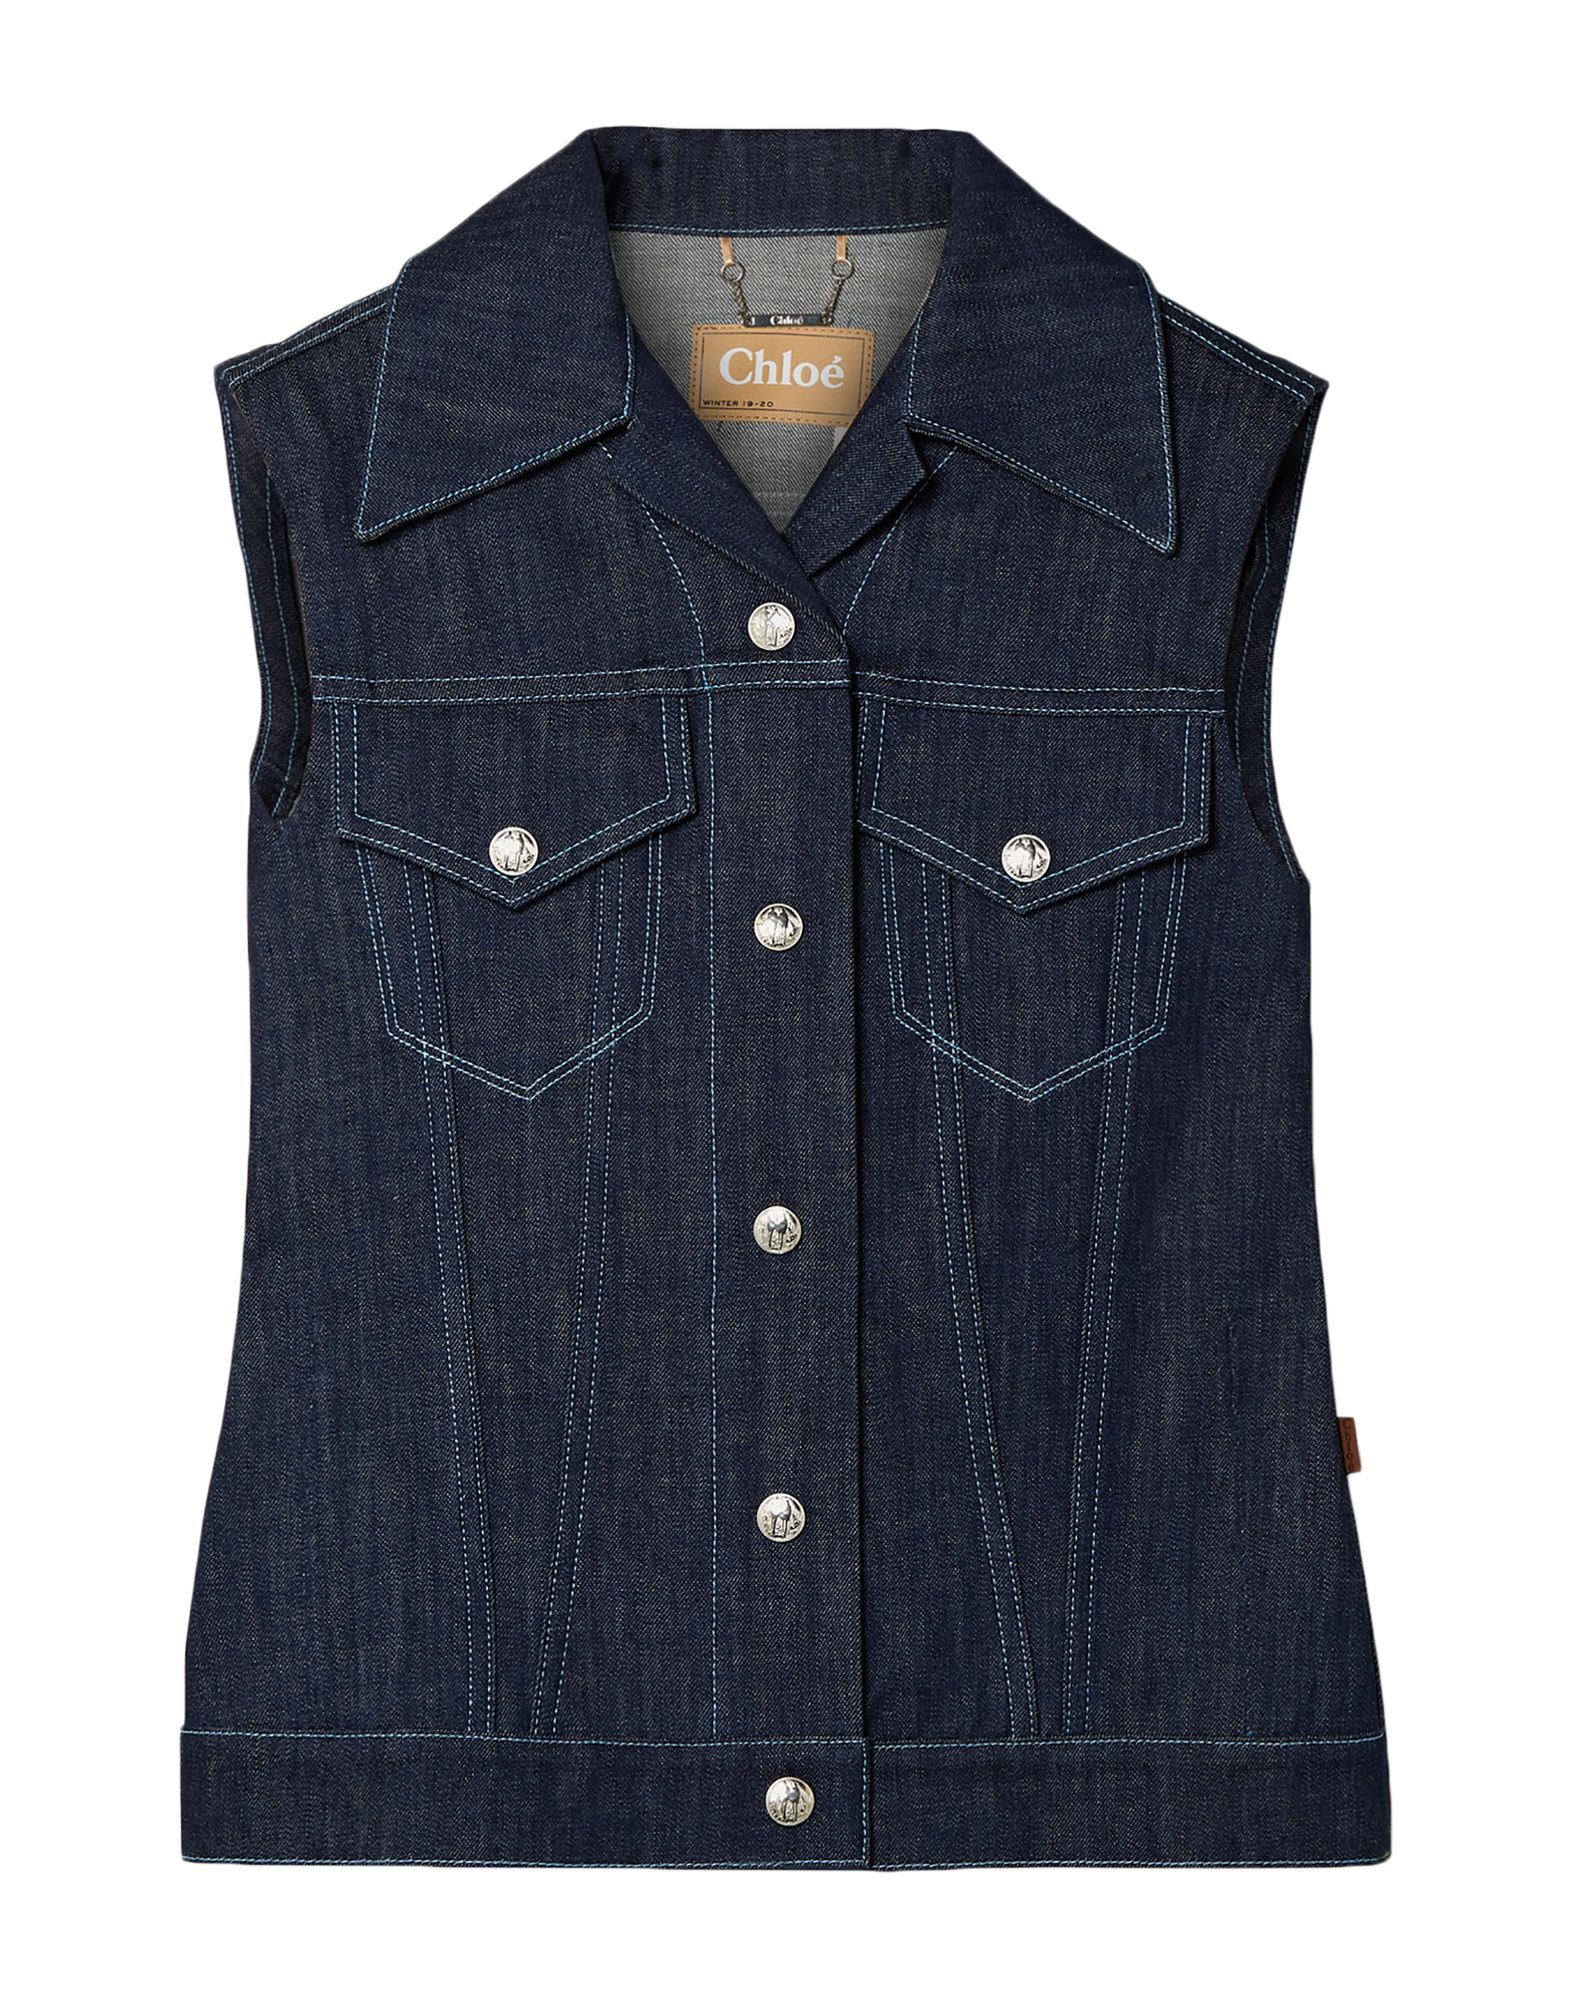 CHLOÉ Denim outerwear. denim, logo, contrasting applications, solid color, medium wash, front closure, classic neckline, single-breasted, button closing, multipockets, unlined, sleeveless, contains non-textile parts of animal origin. 100% Cotton, Polyester, Ceramic, Bovine leather